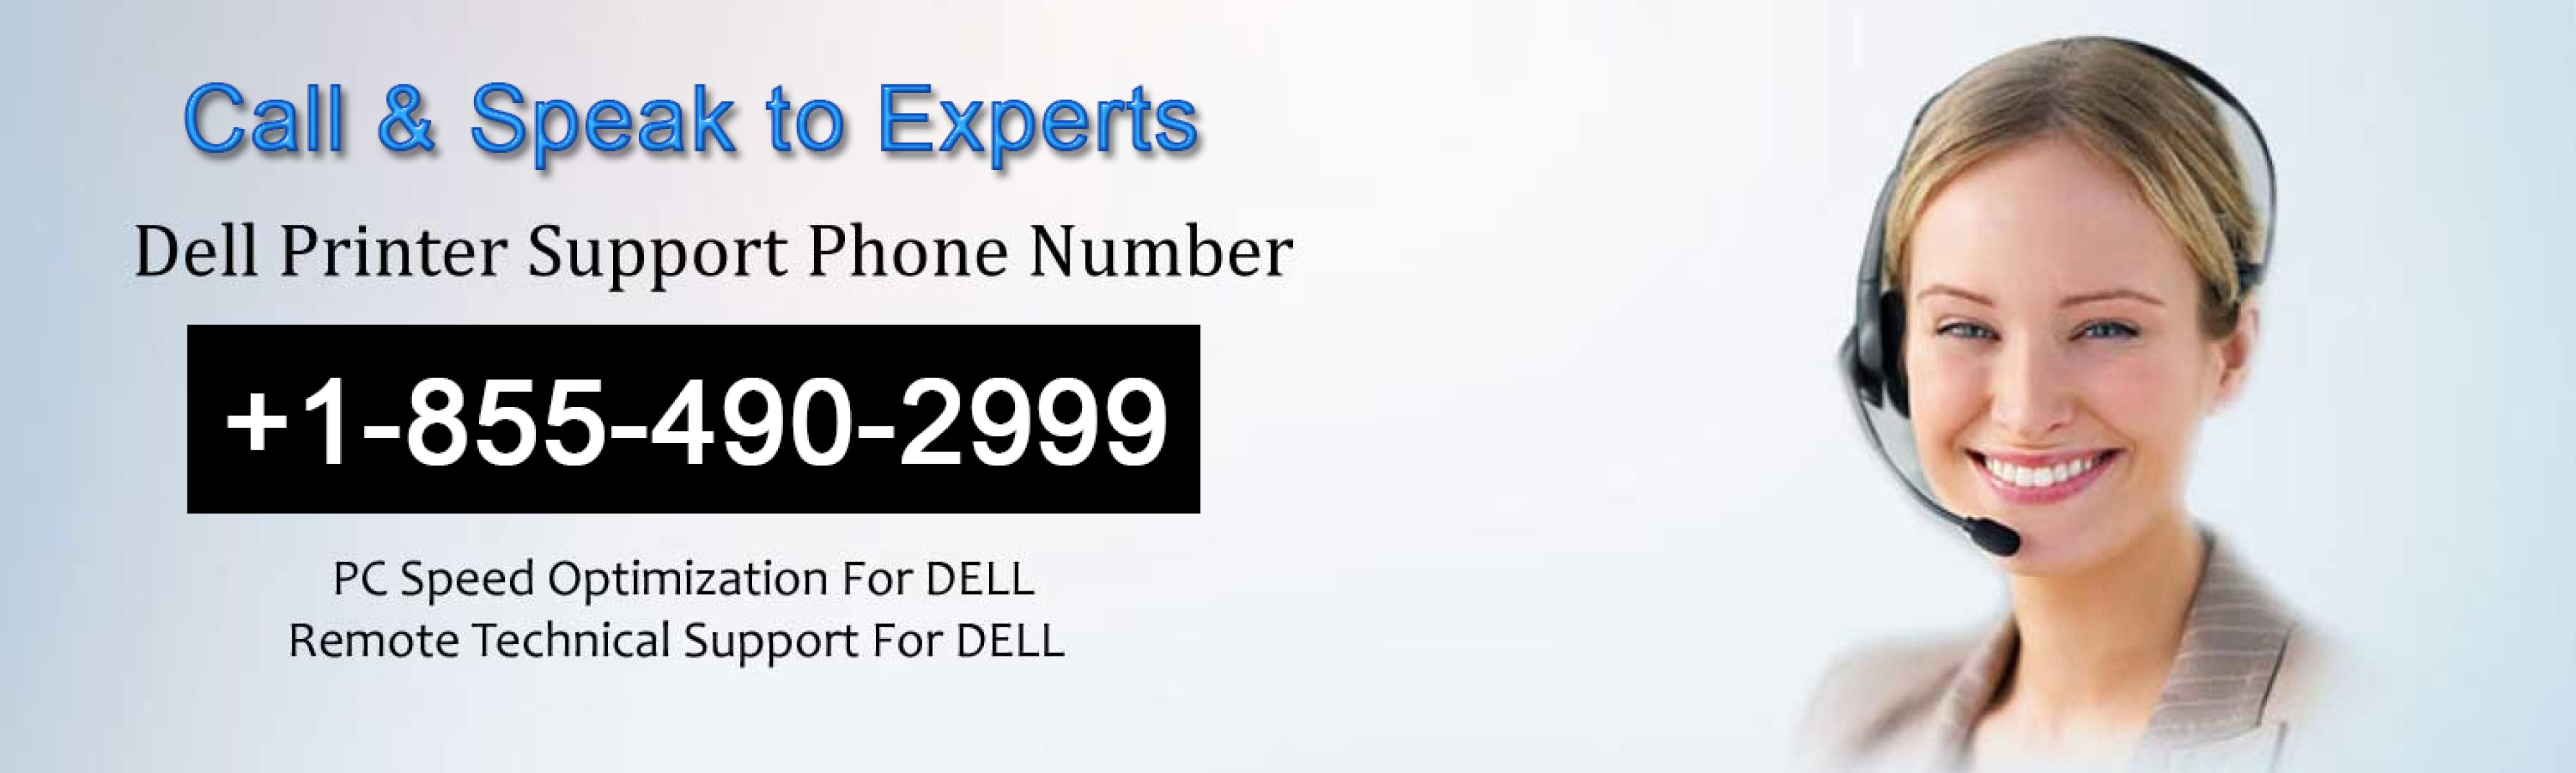 Contact us on our Dell printer tech support number +1-855-490-2999